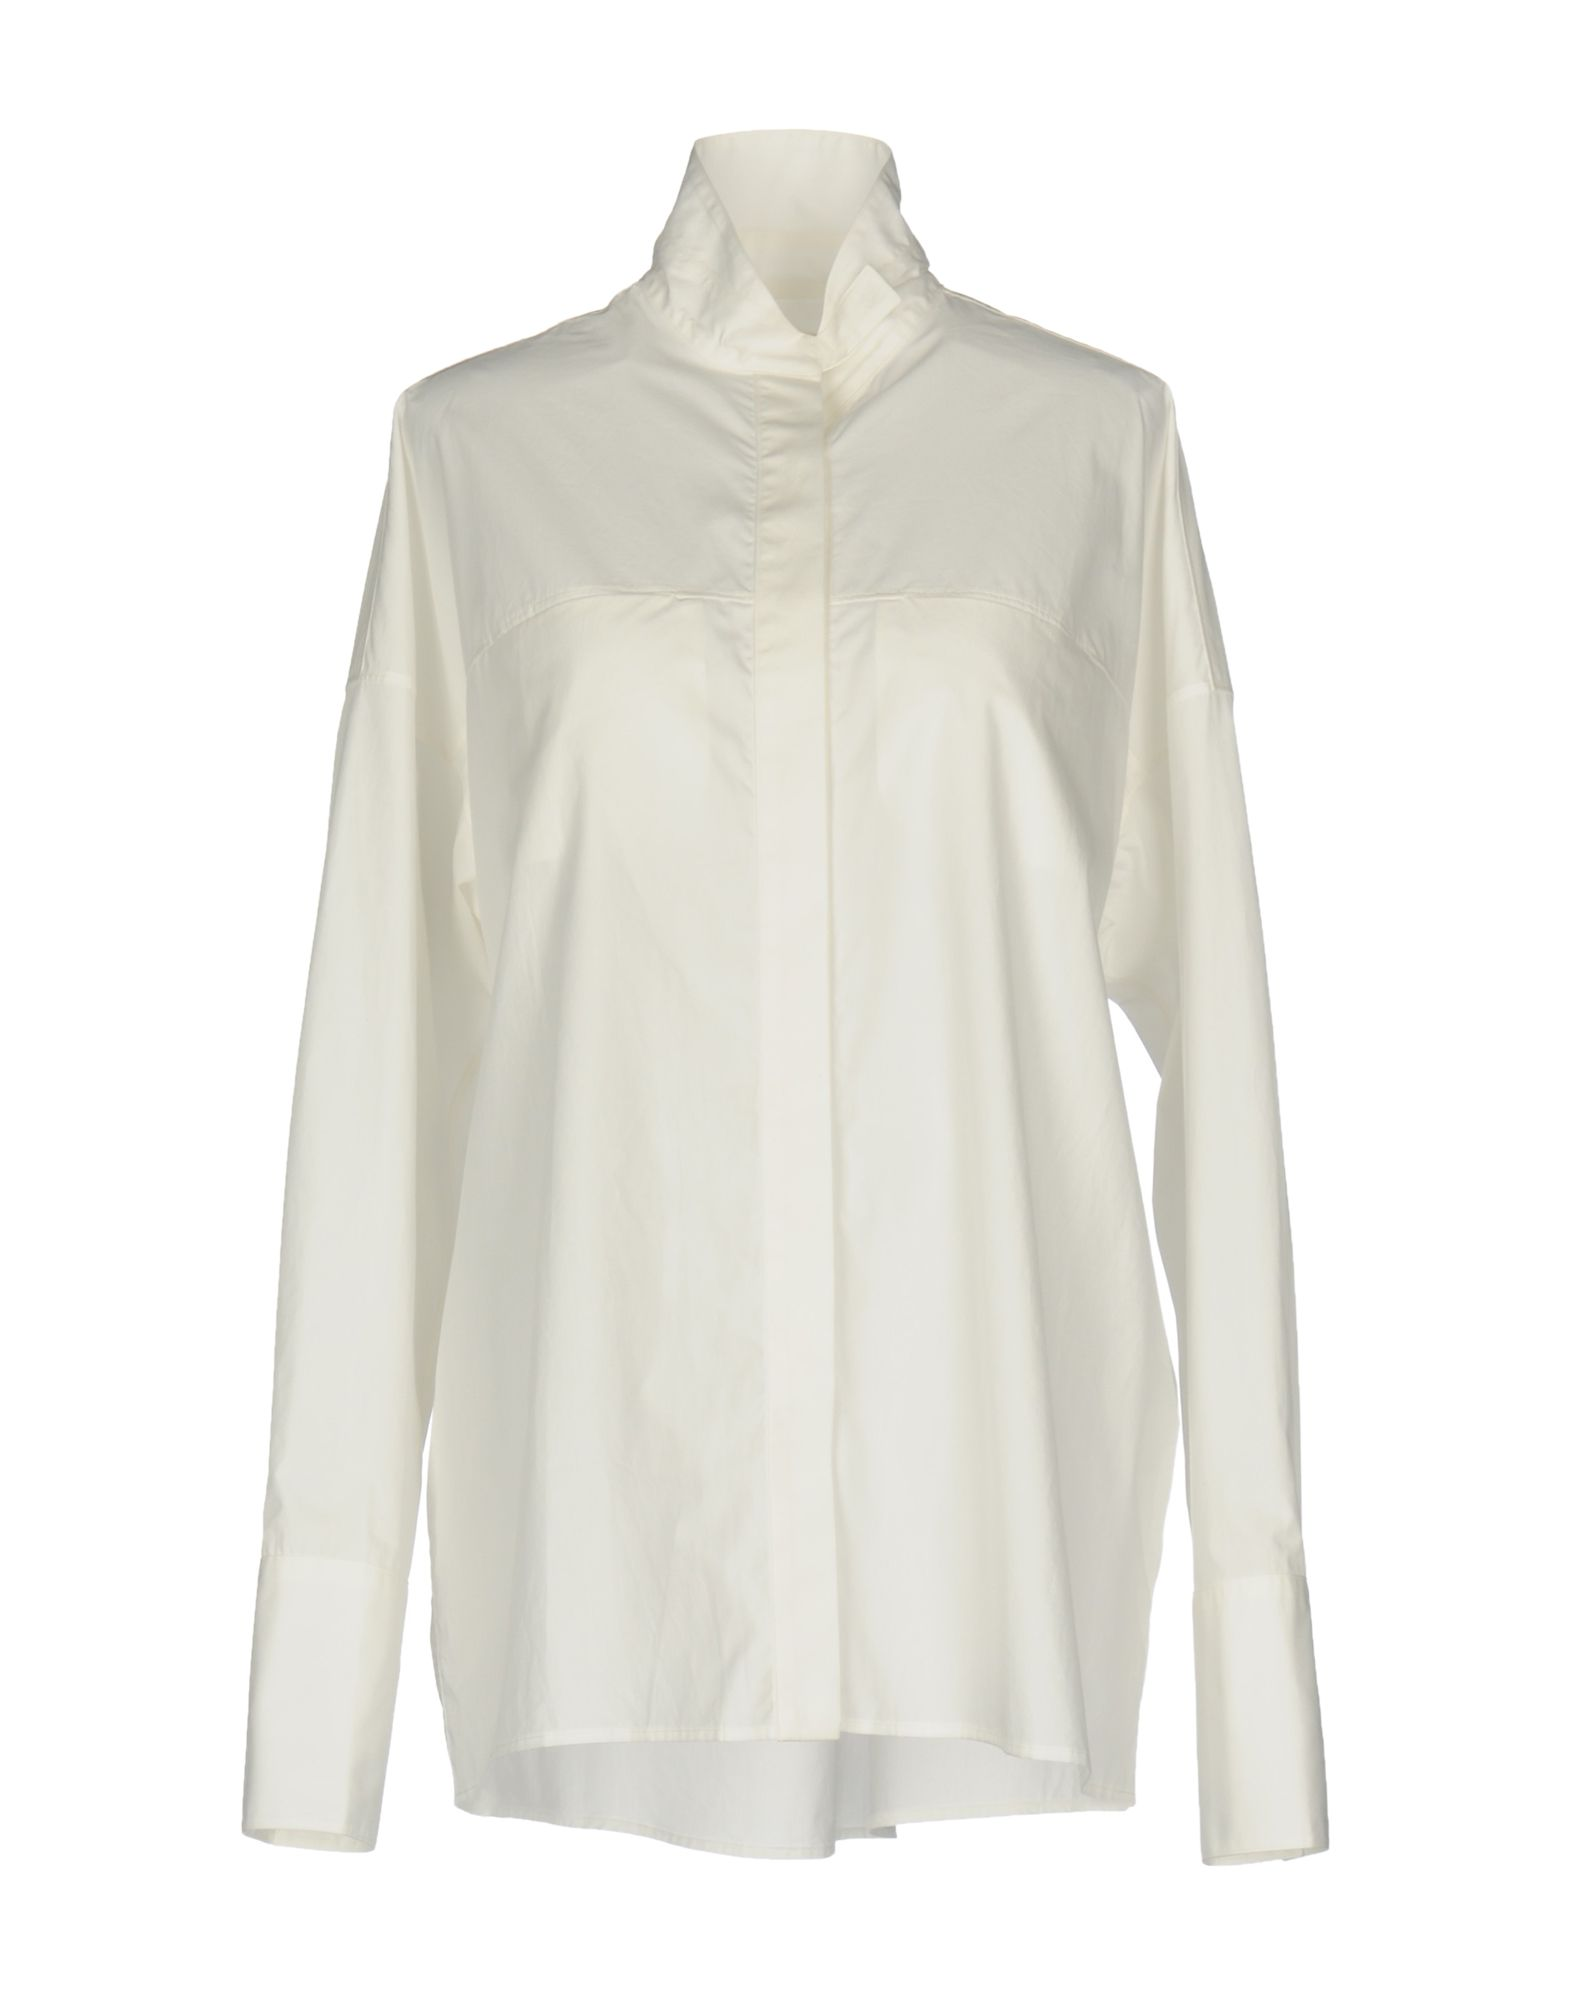 BY. BONNIE YOUNG Silk Shirts & Blouses in Ivory